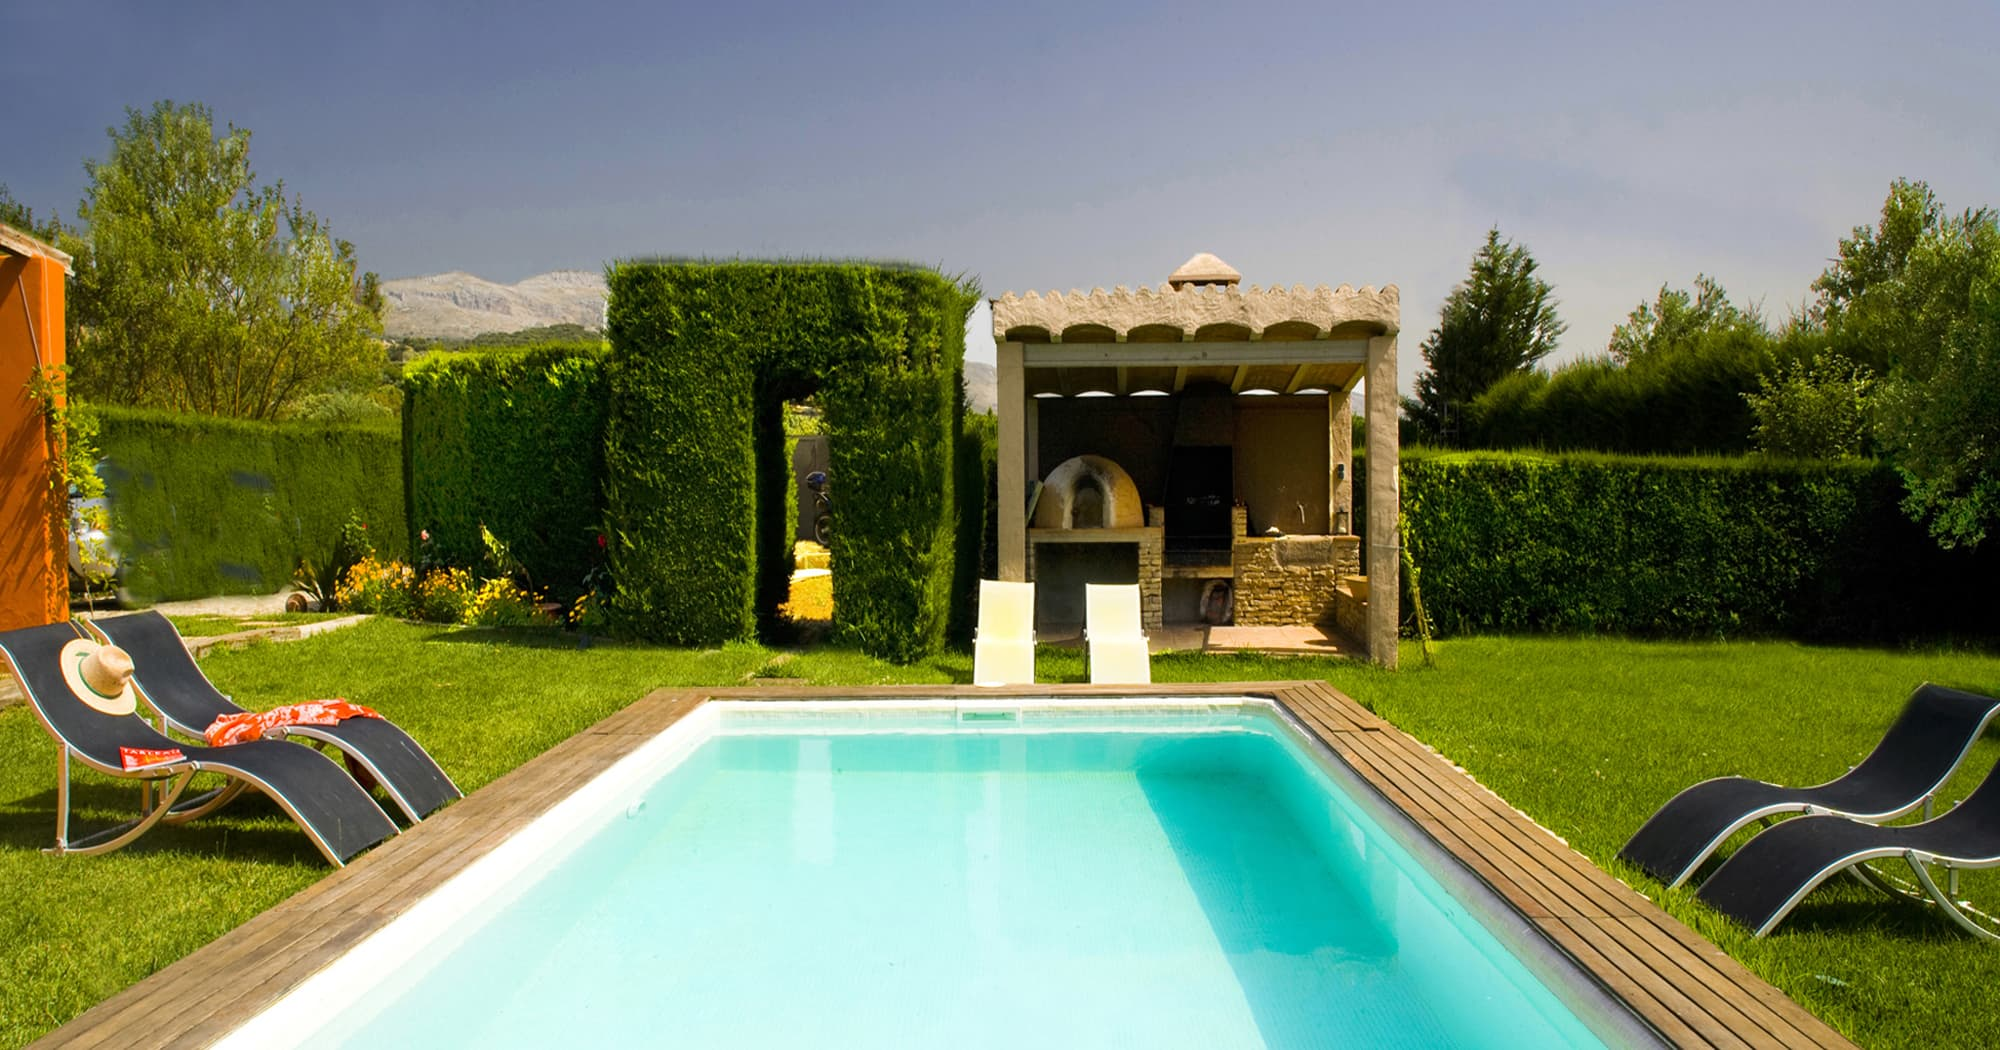 holiday villas andalucia spain